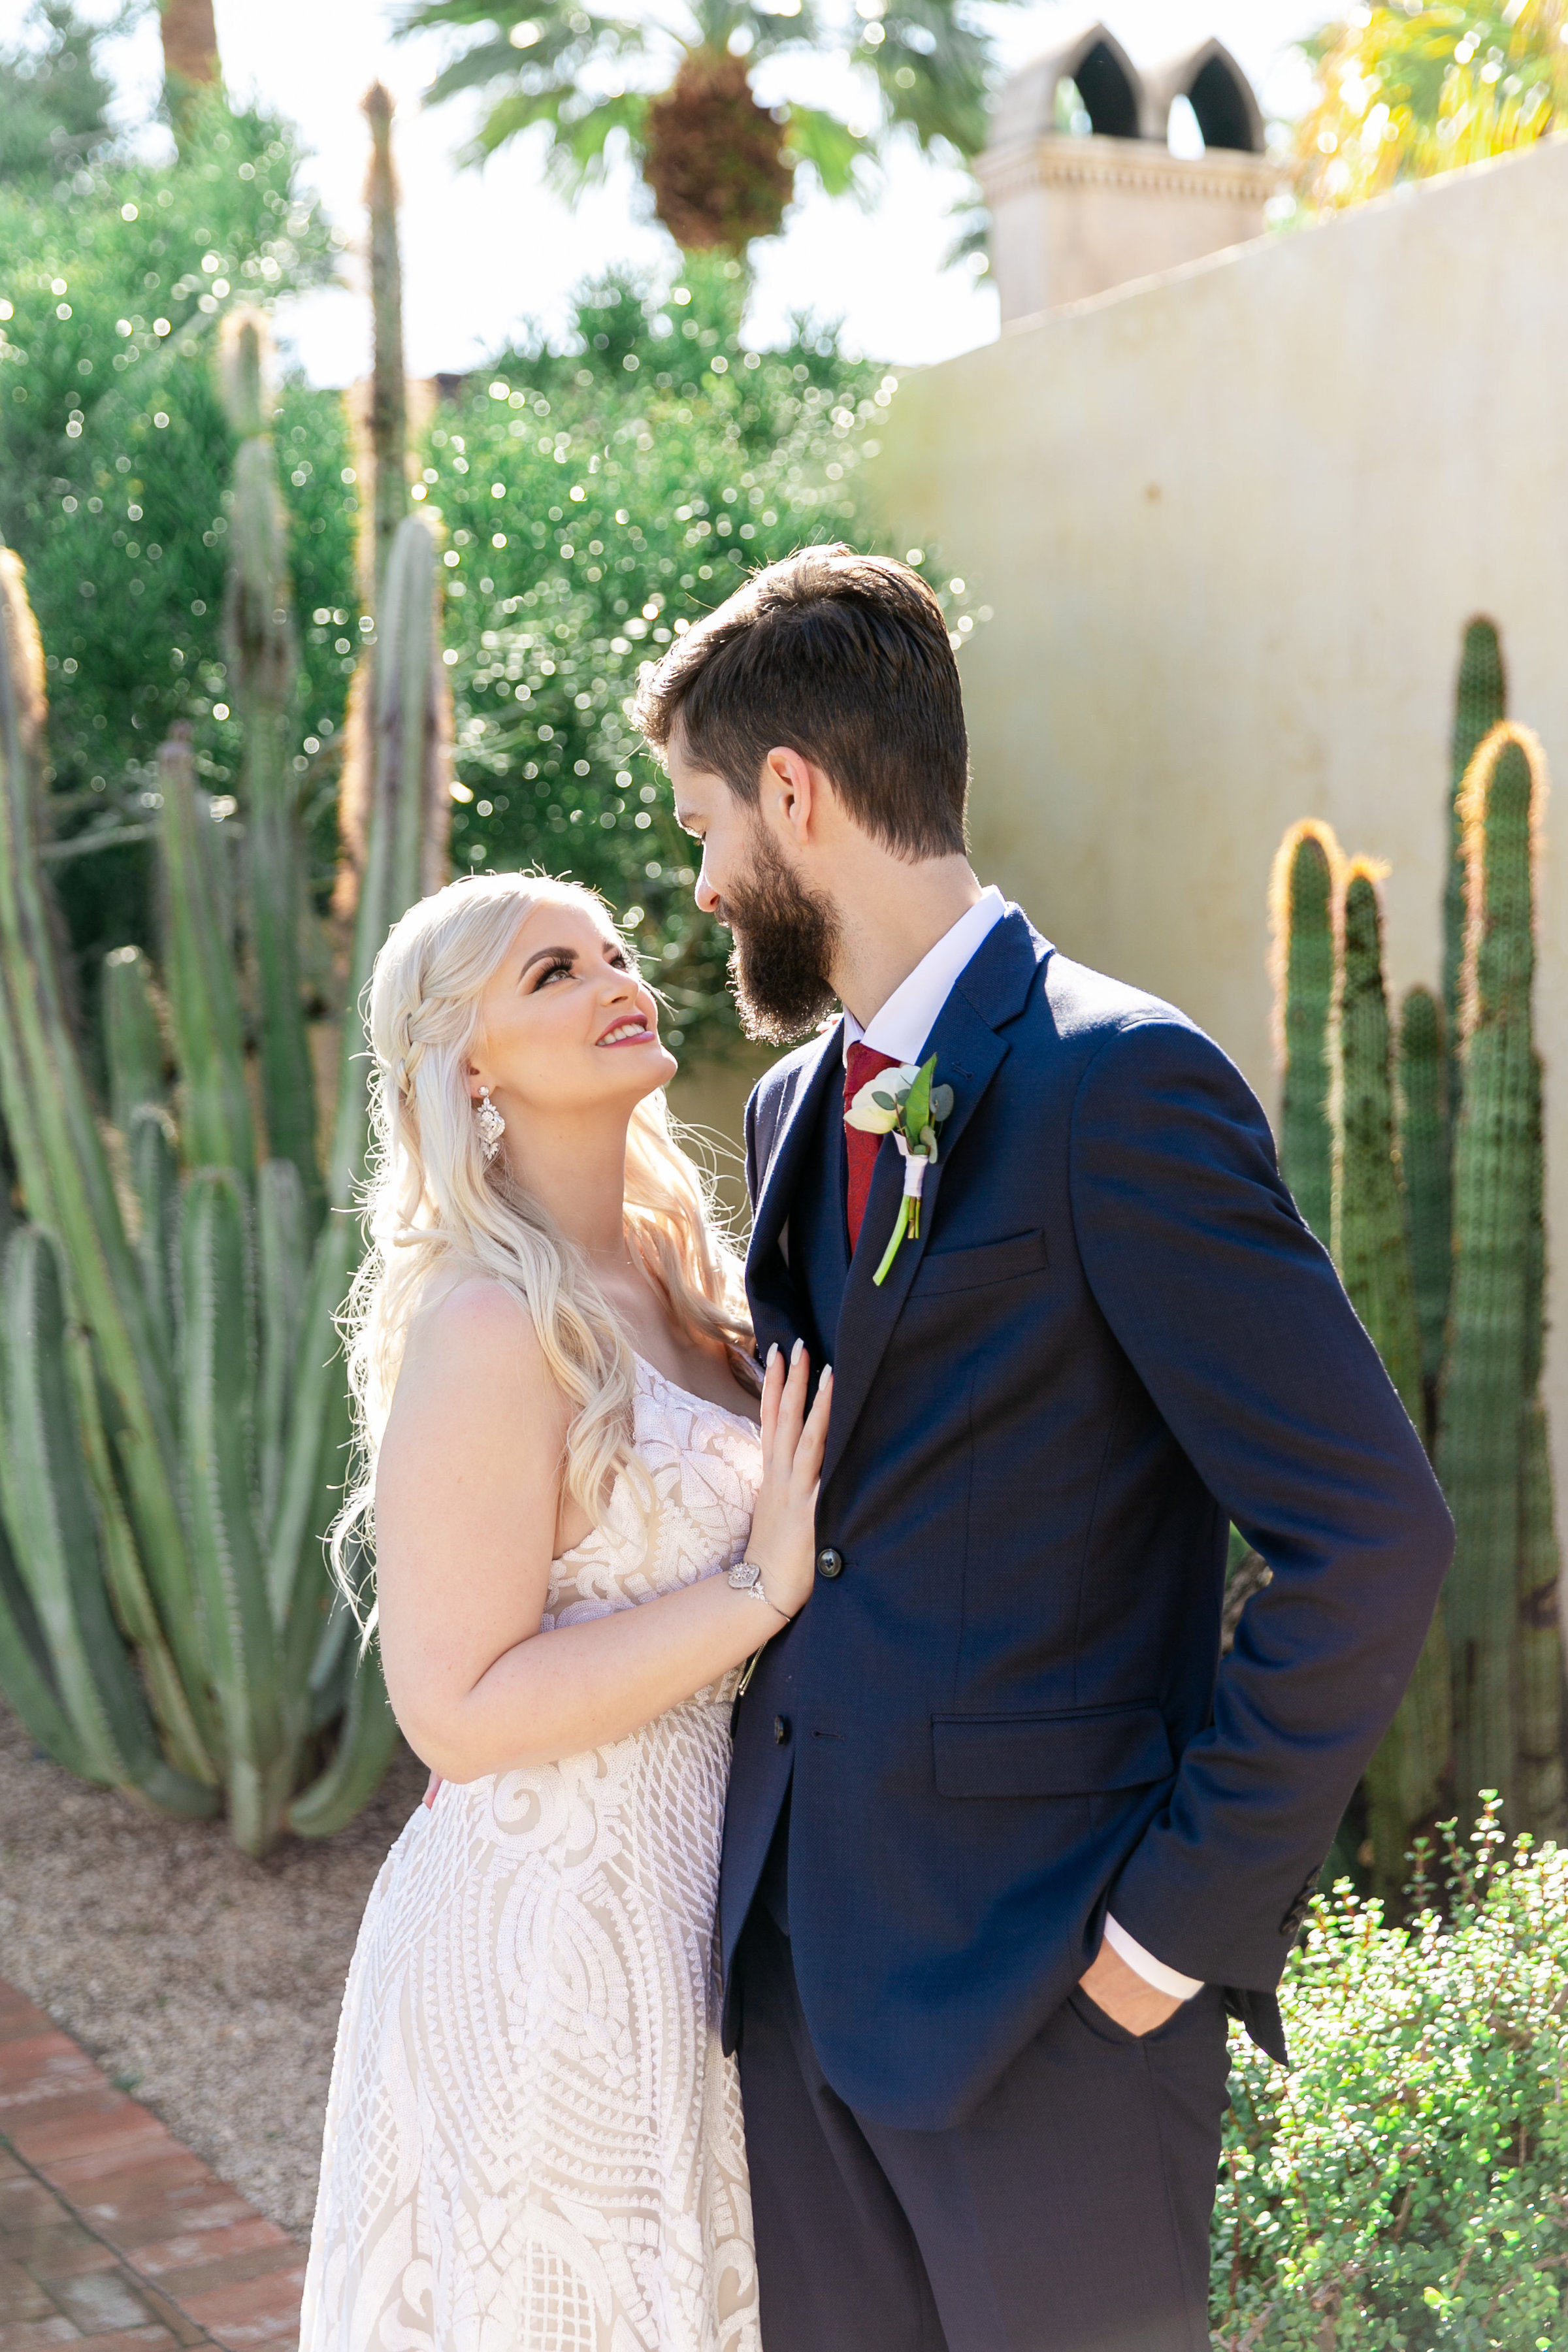 Karlie Colleen Photography - The Royal Palms Wedding - Some Like It Classic - Alex & Sam-150